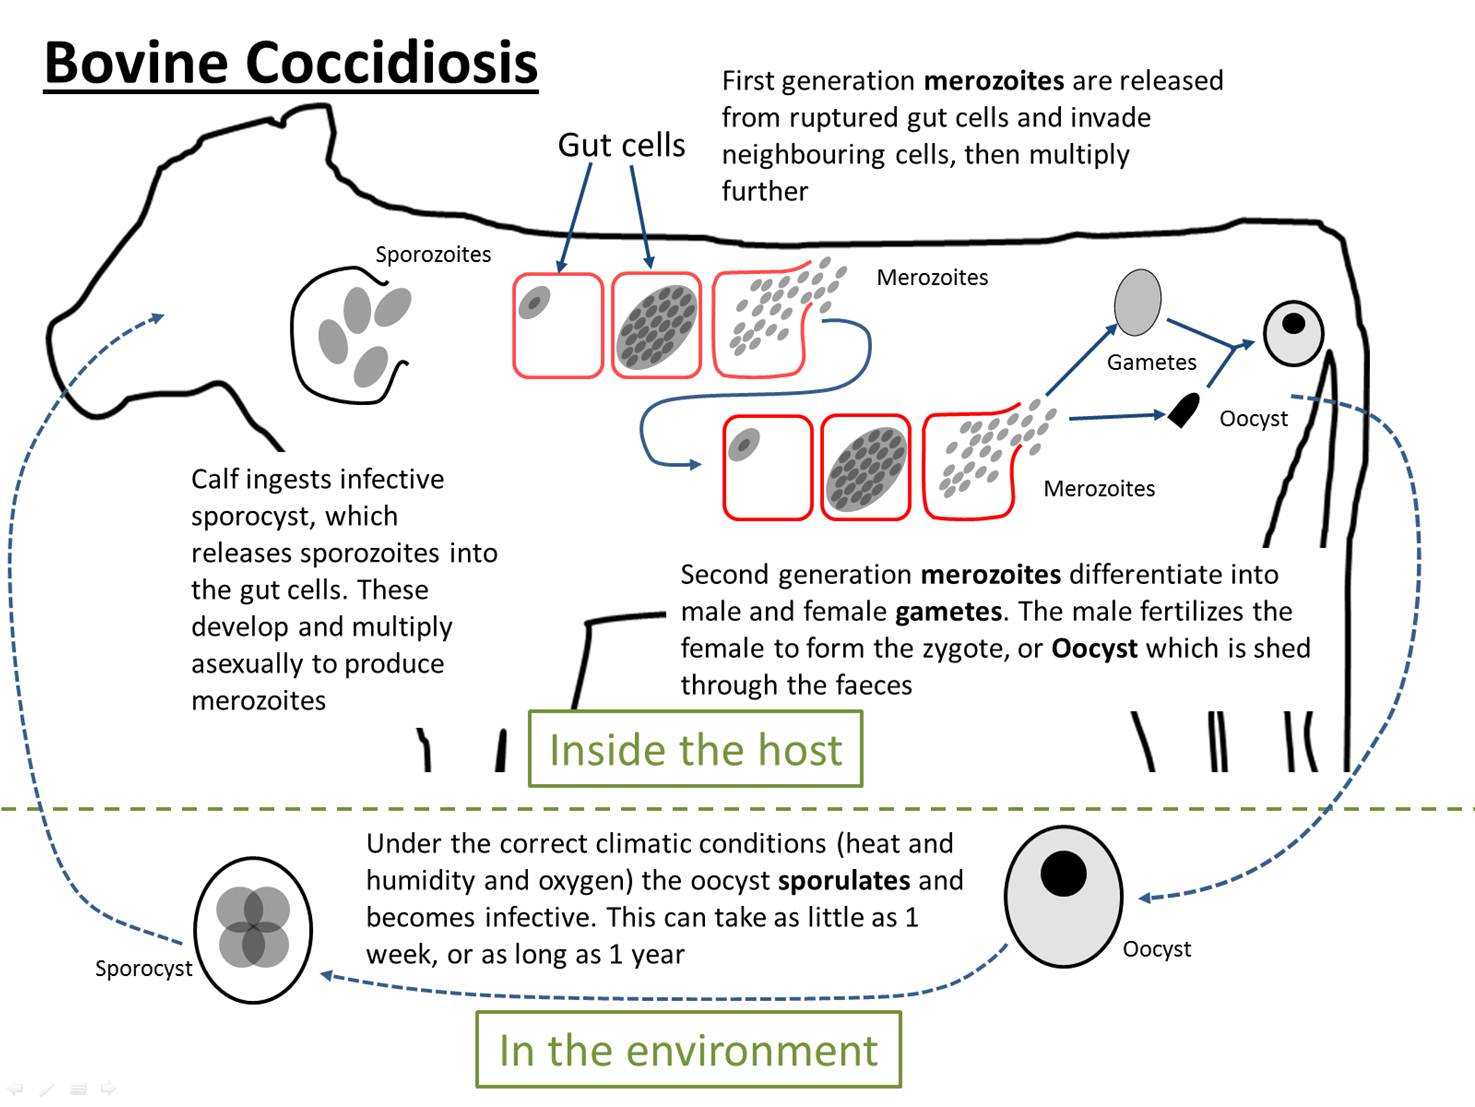 Farm health online animal health and welfare knowledge hub bovine coccidiosis life cycle pooptronica Image collections